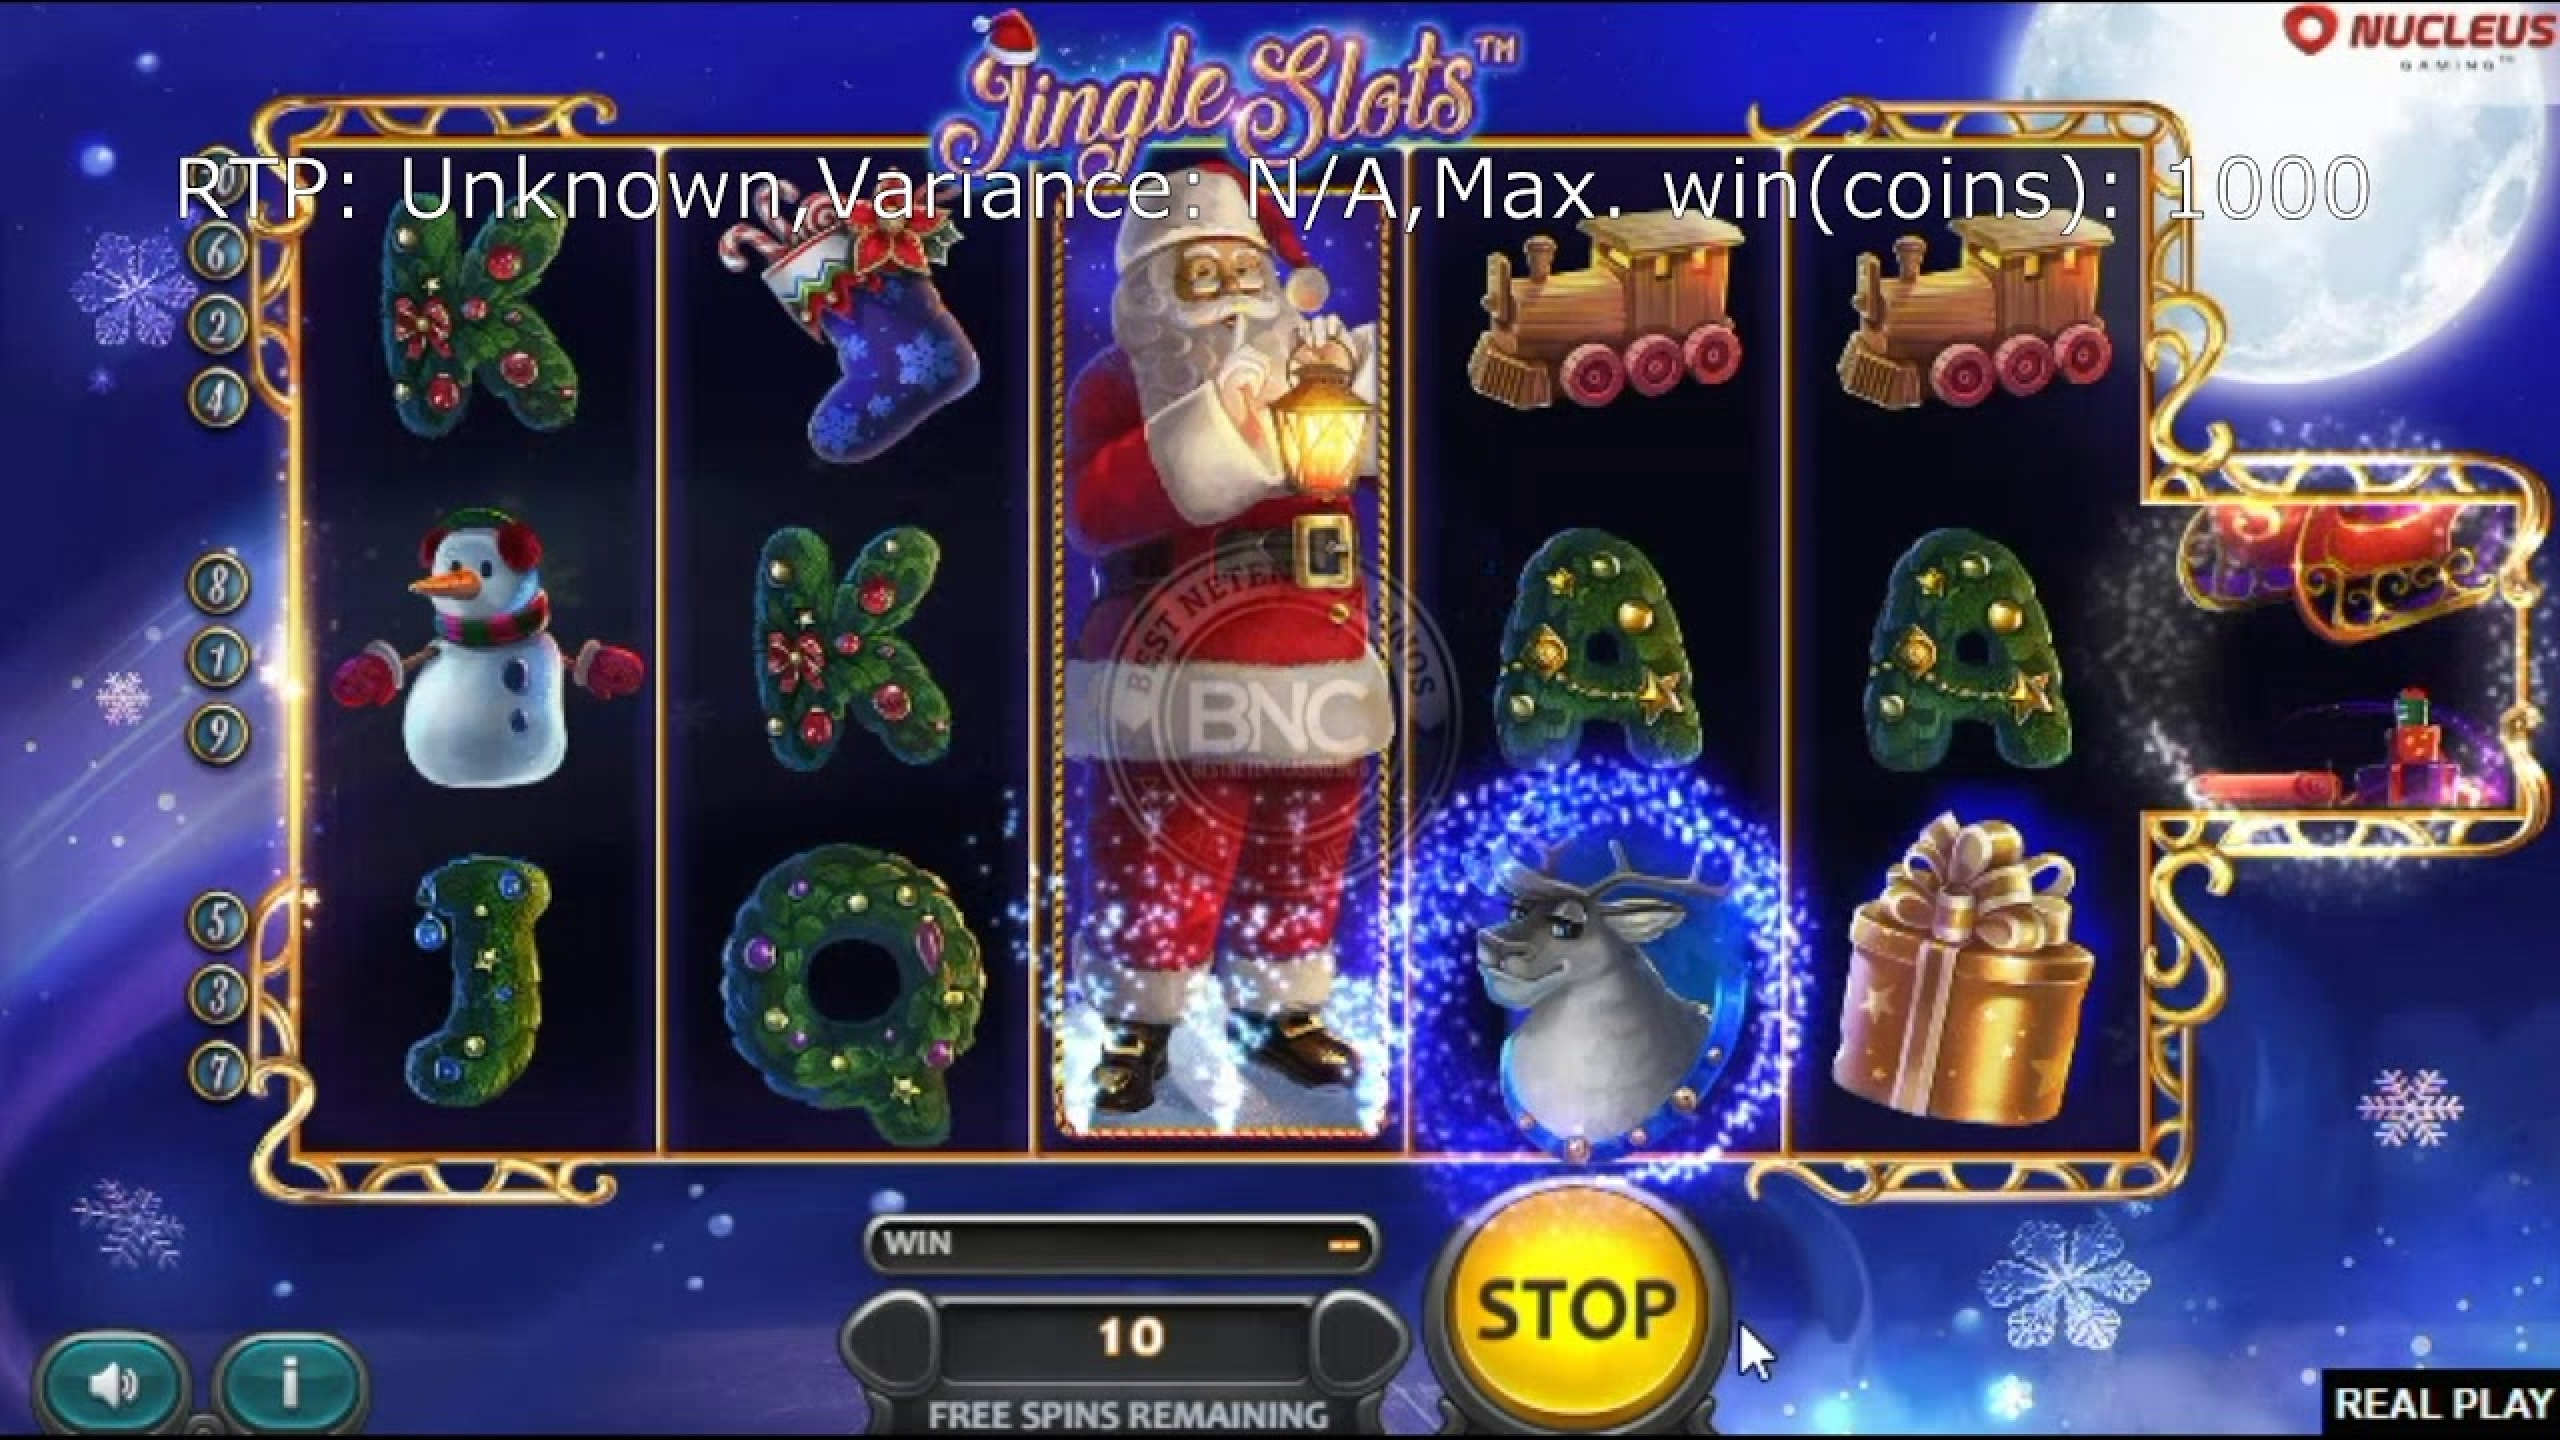 The Jingle Slots Online Slot Demo Game by Nucleus Gaming